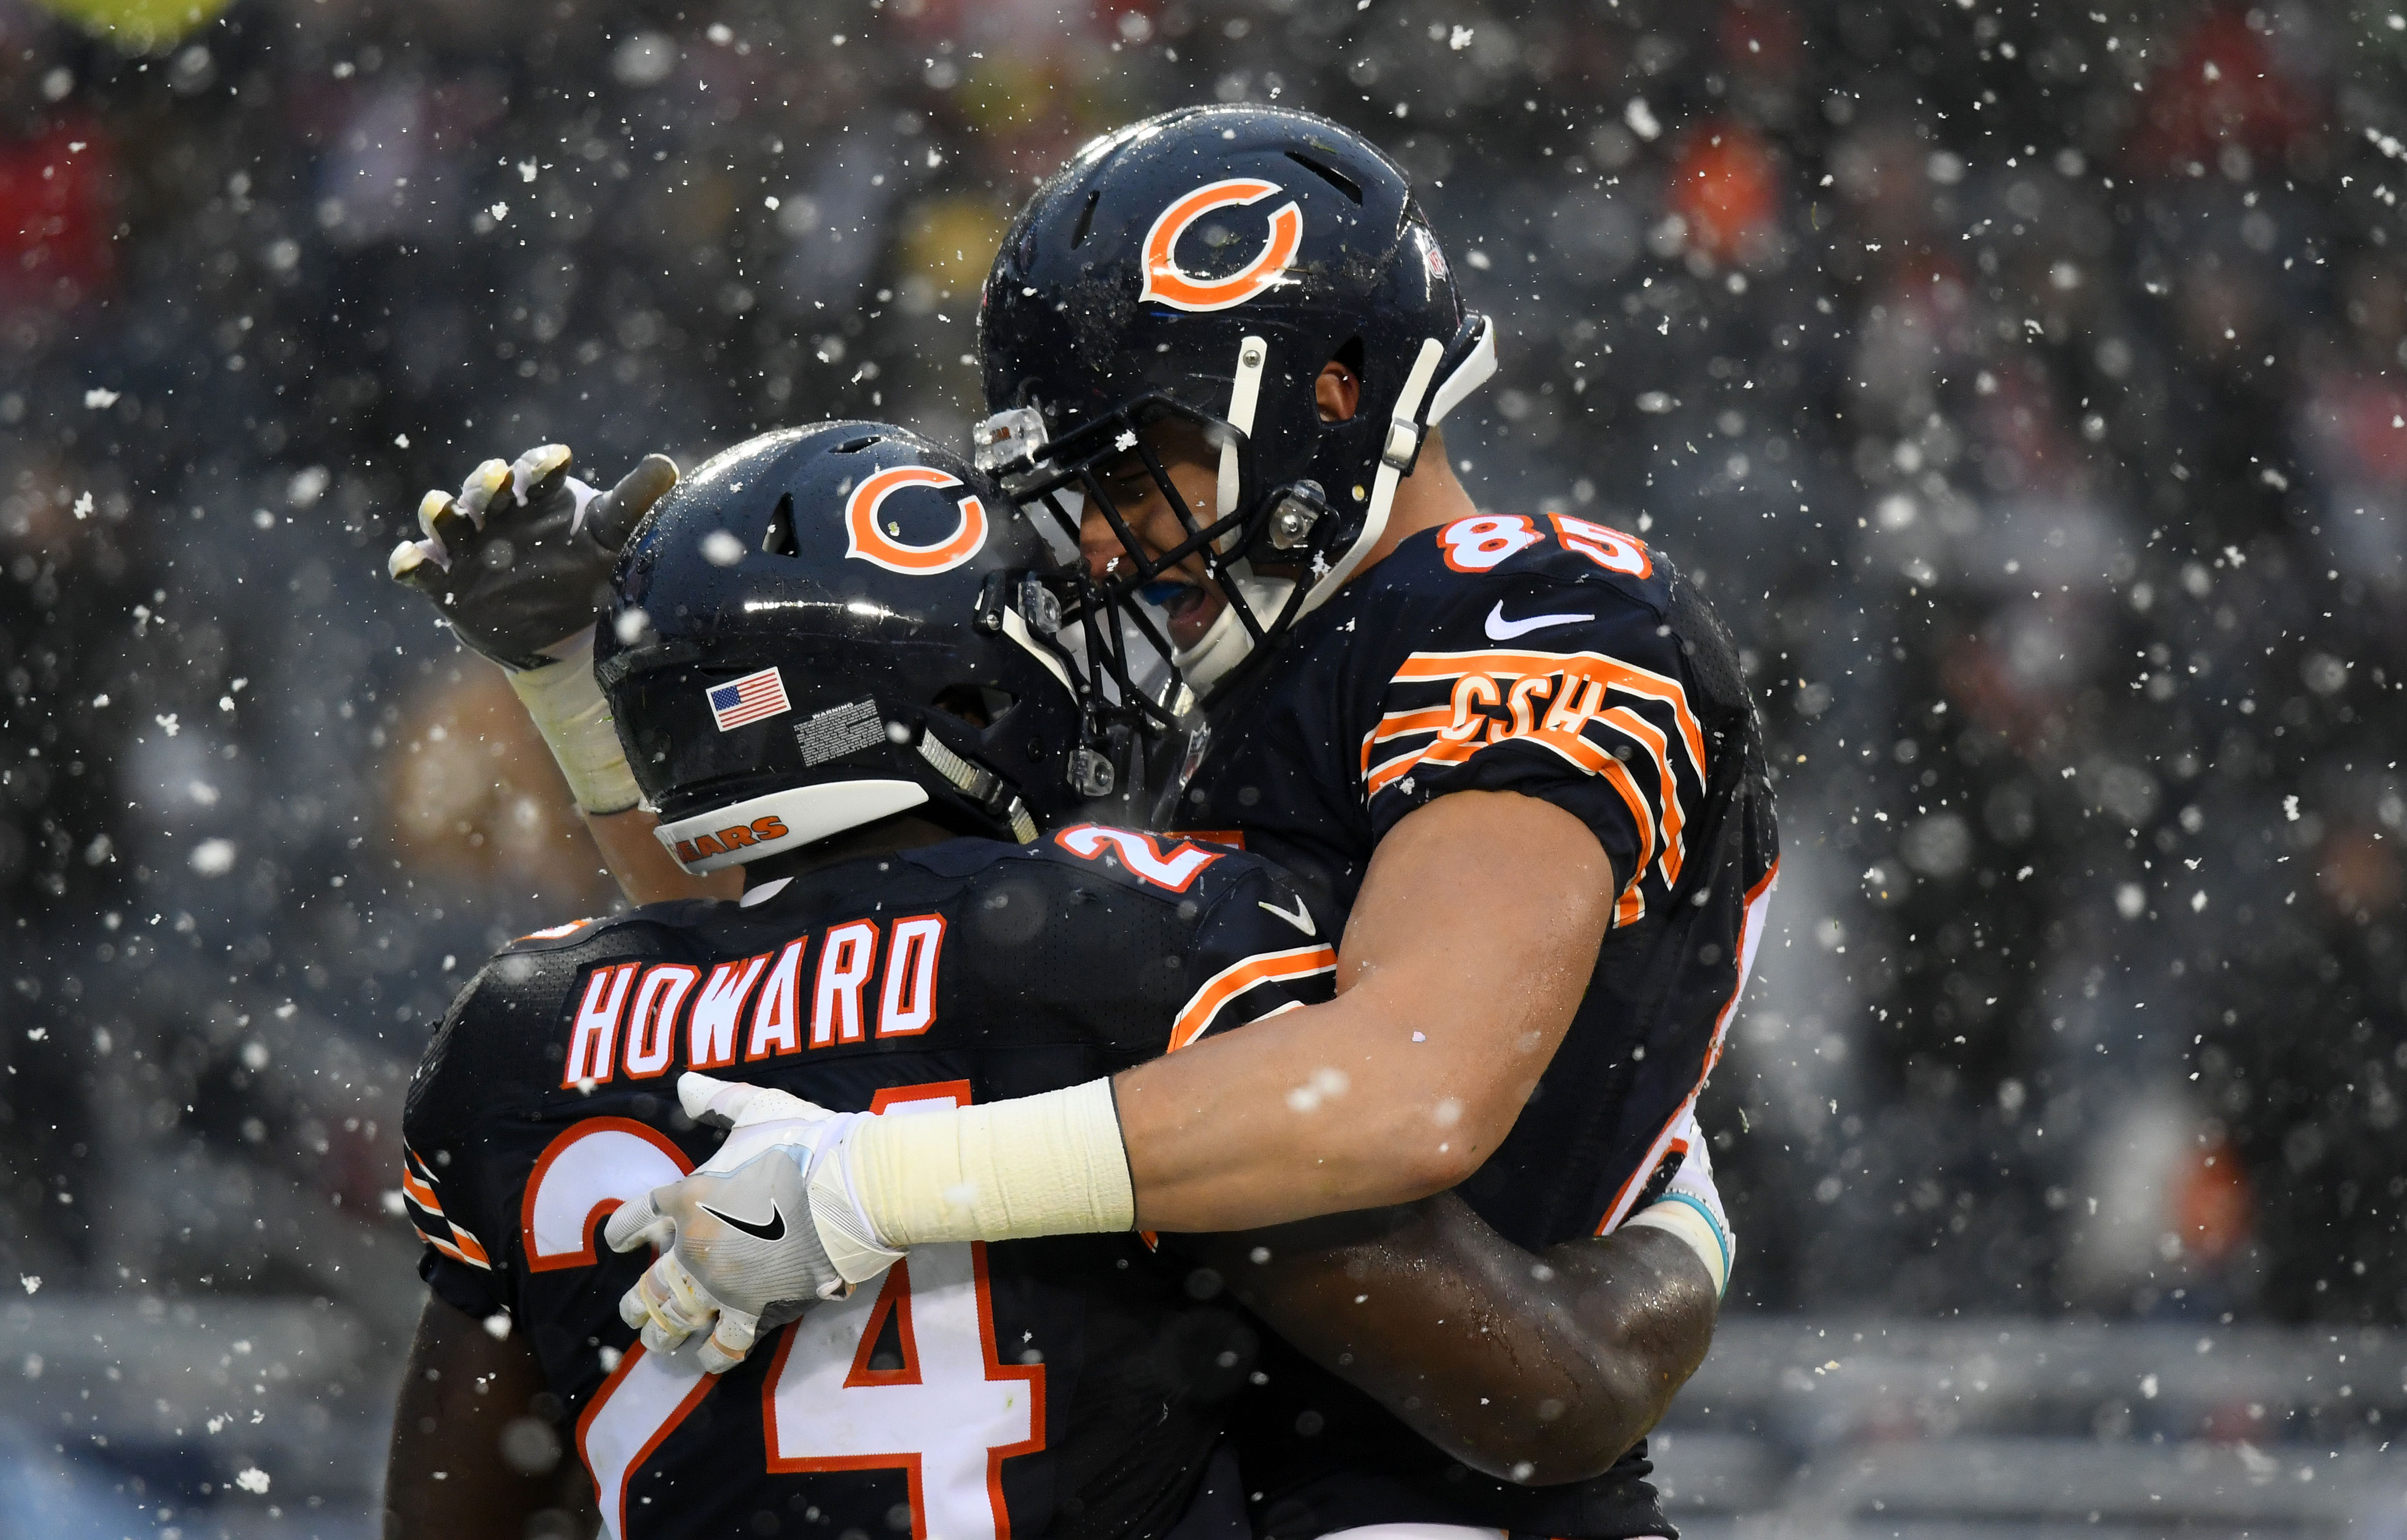 9724737-nfl-san-francisco-49ers-at-chicago-bears